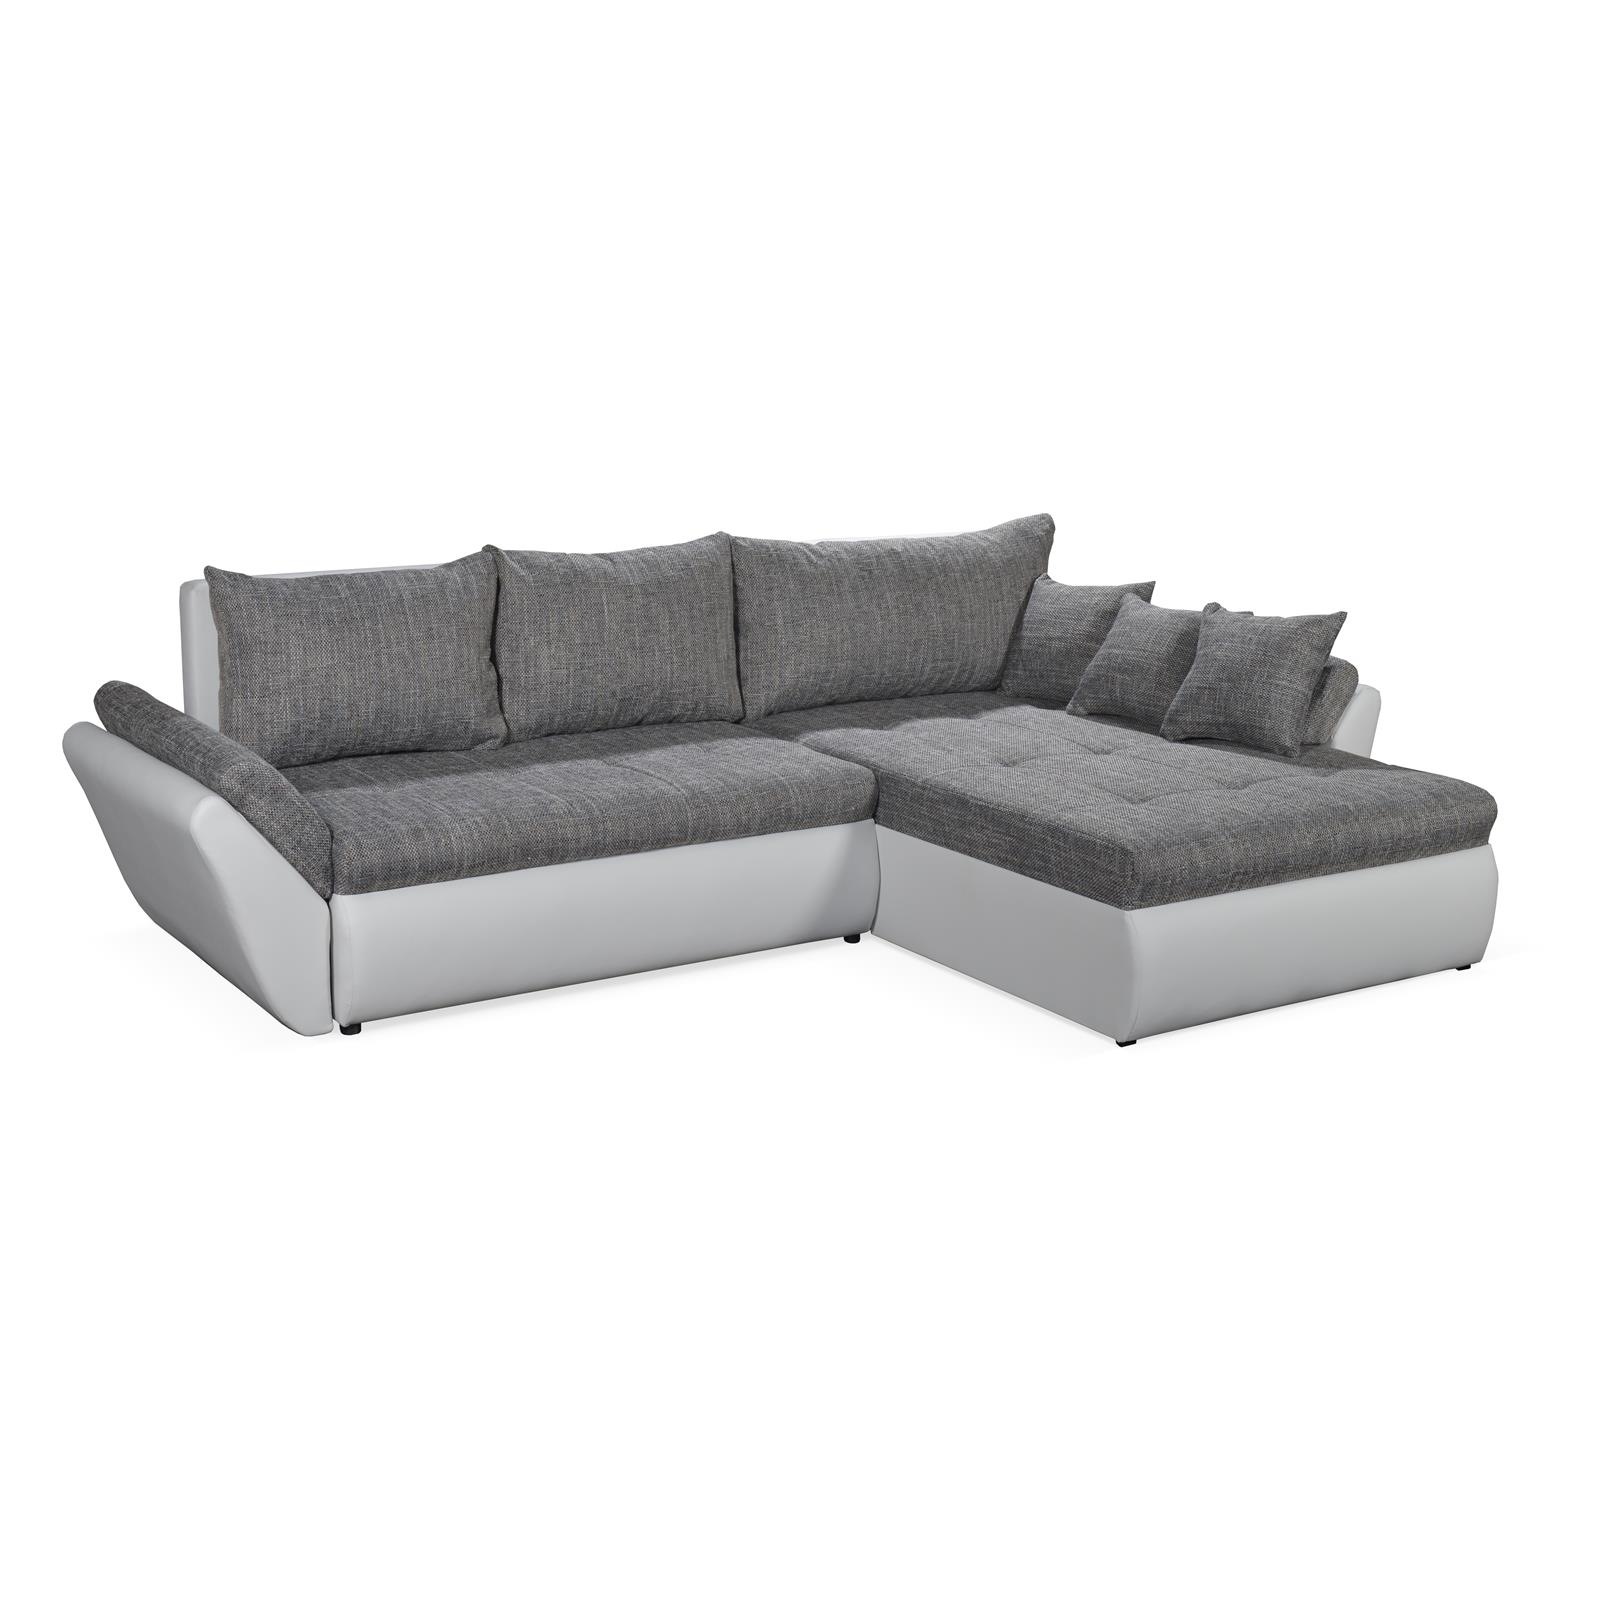 eckcouch sofa weiss grau mit schlaffunktion bettkasten ottomane garnitur design ebay. Black Bedroom Furniture Sets. Home Design Ideas